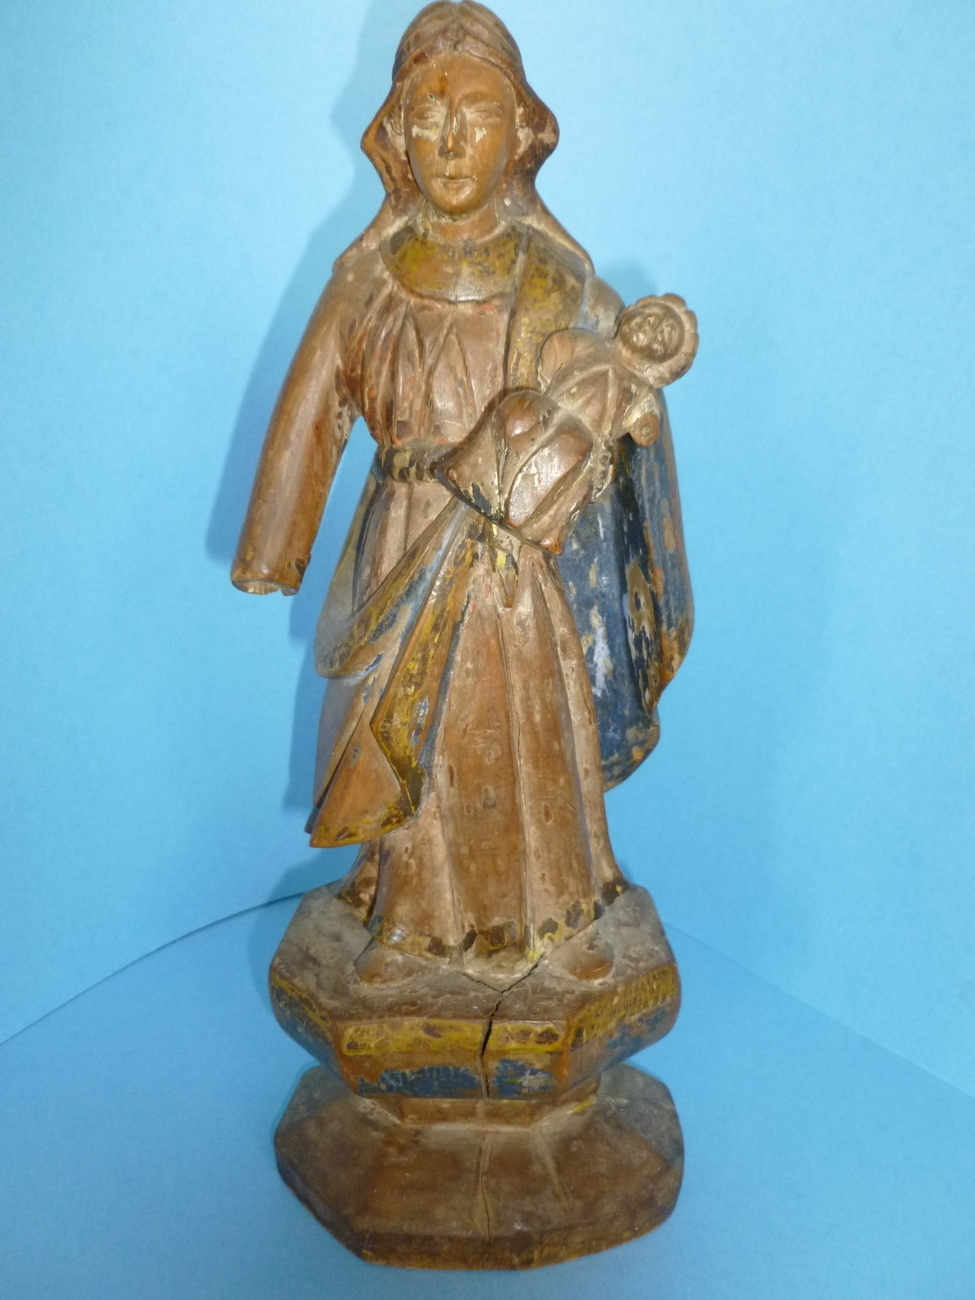 Antique Spanish Wood Santos Colonial Mother and Child Figure Statue c.1840-1850